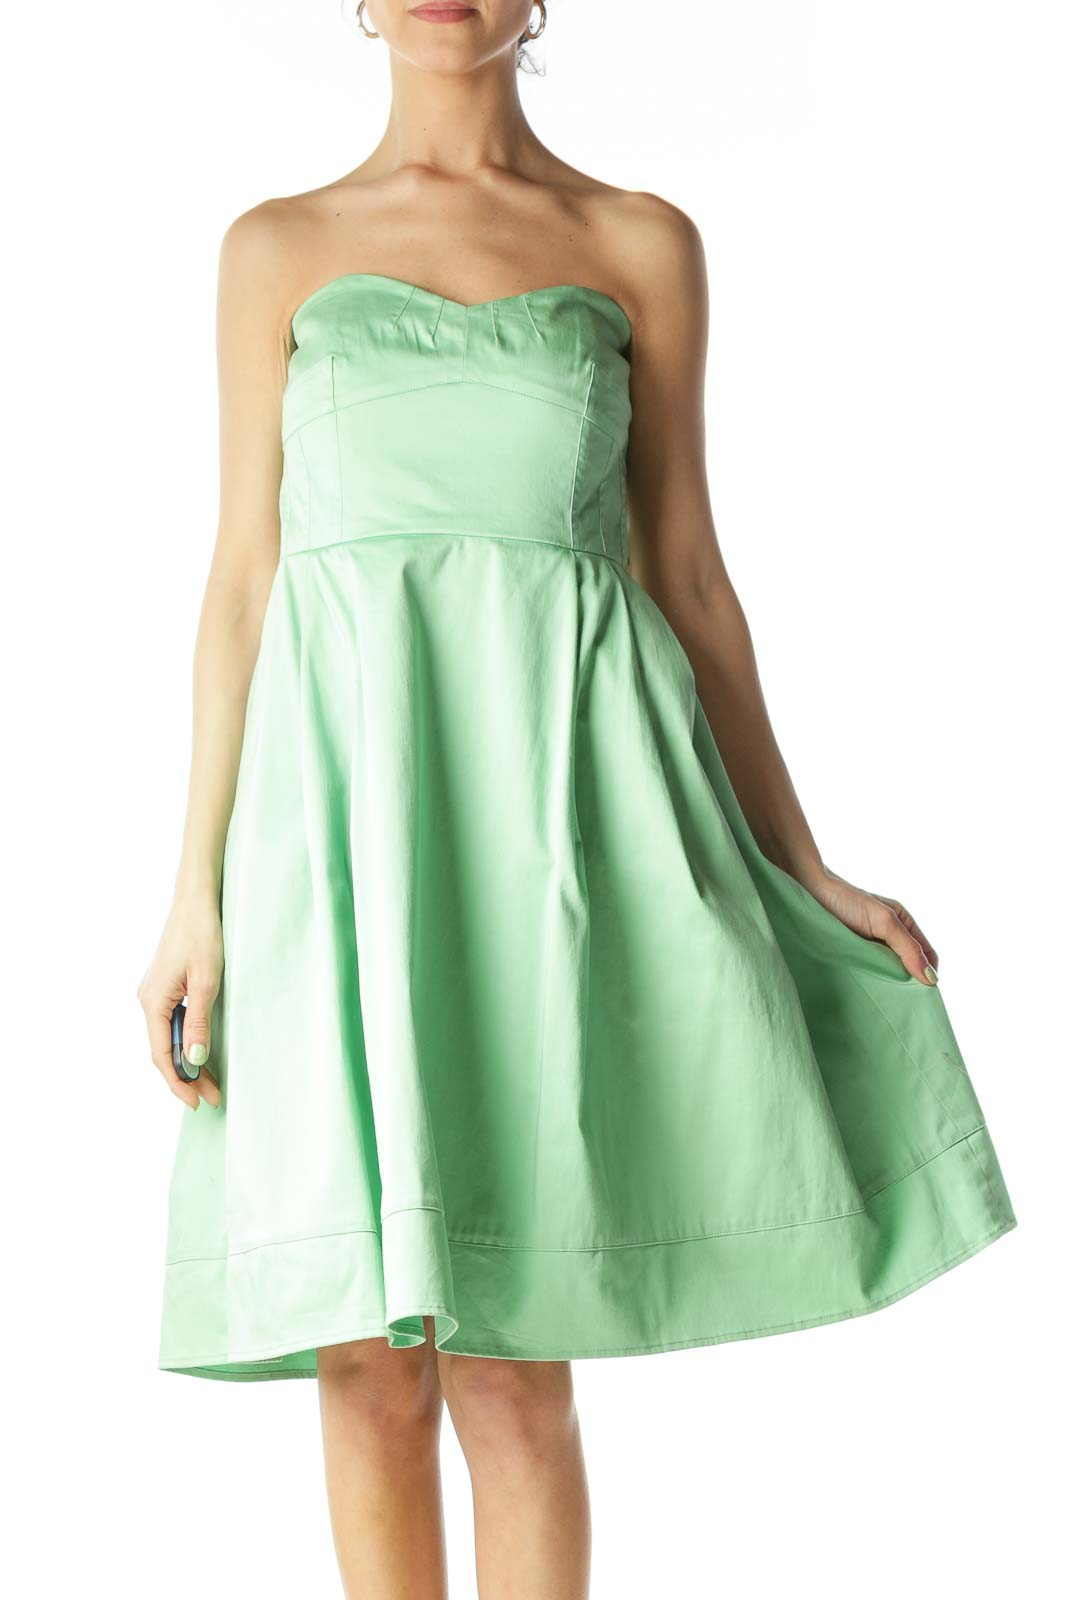 Green Strapless Dress